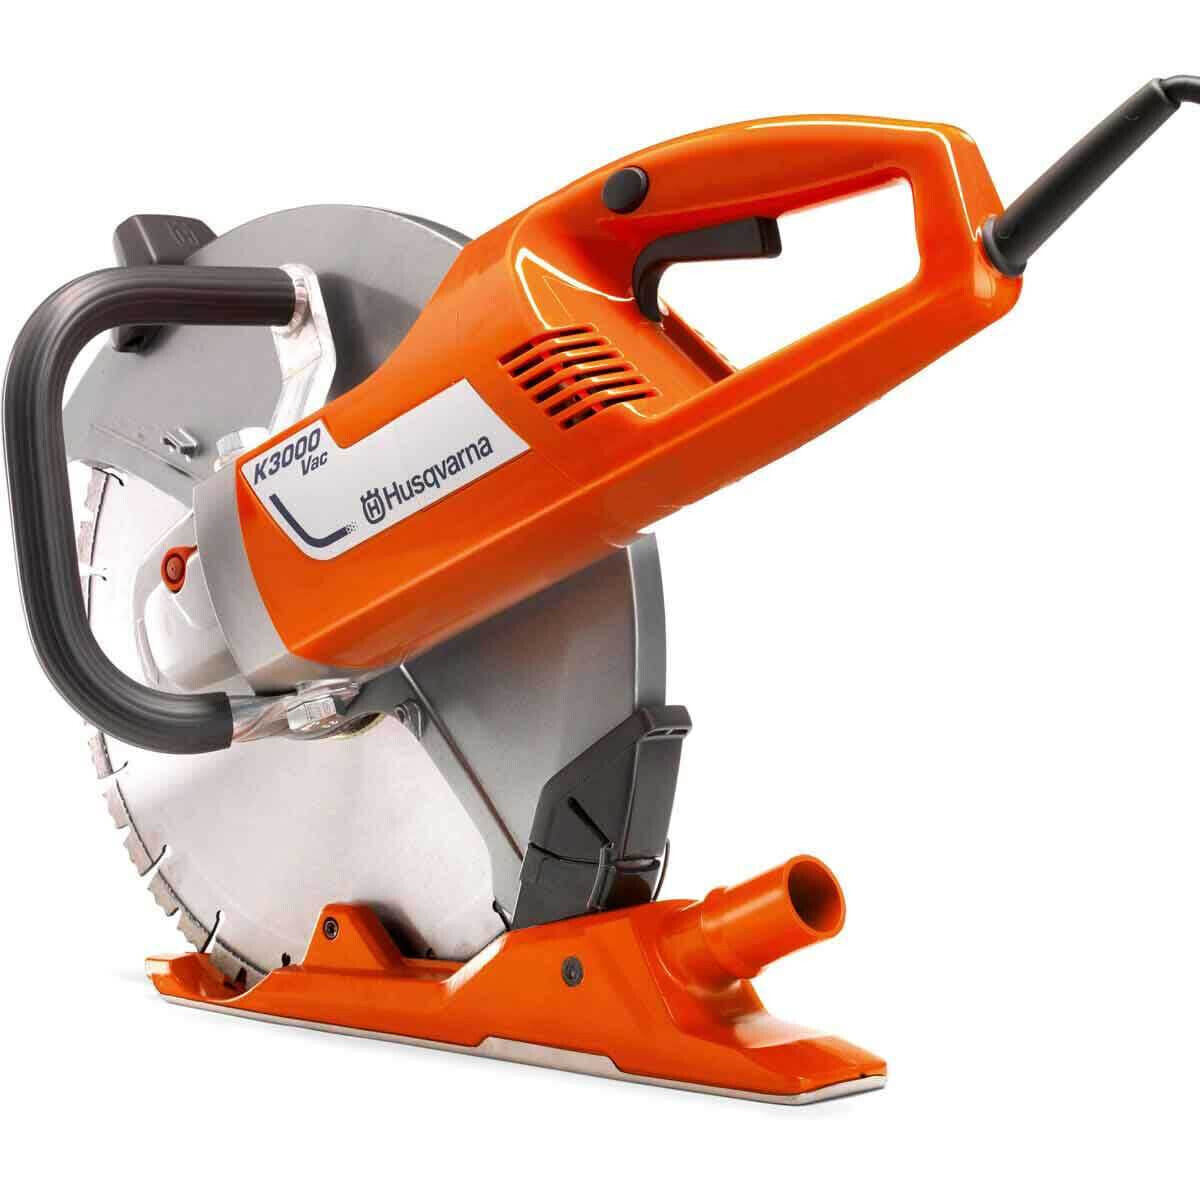 Husqvarna K4000 Power Cutter with Dust Reducer